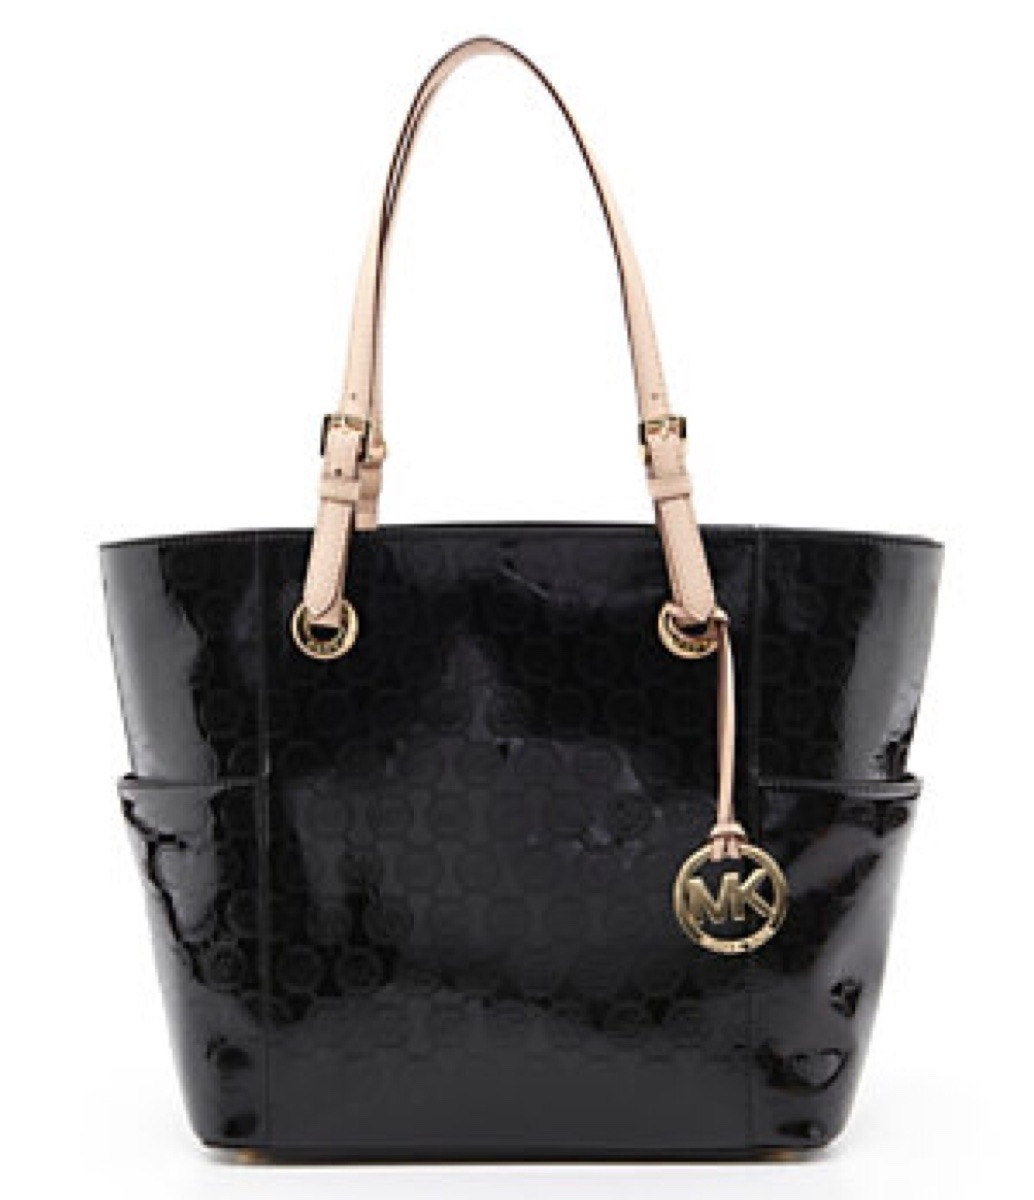 Bolsa De Mao Michael Kors Original : Bolsa michael kors mk original car interior design